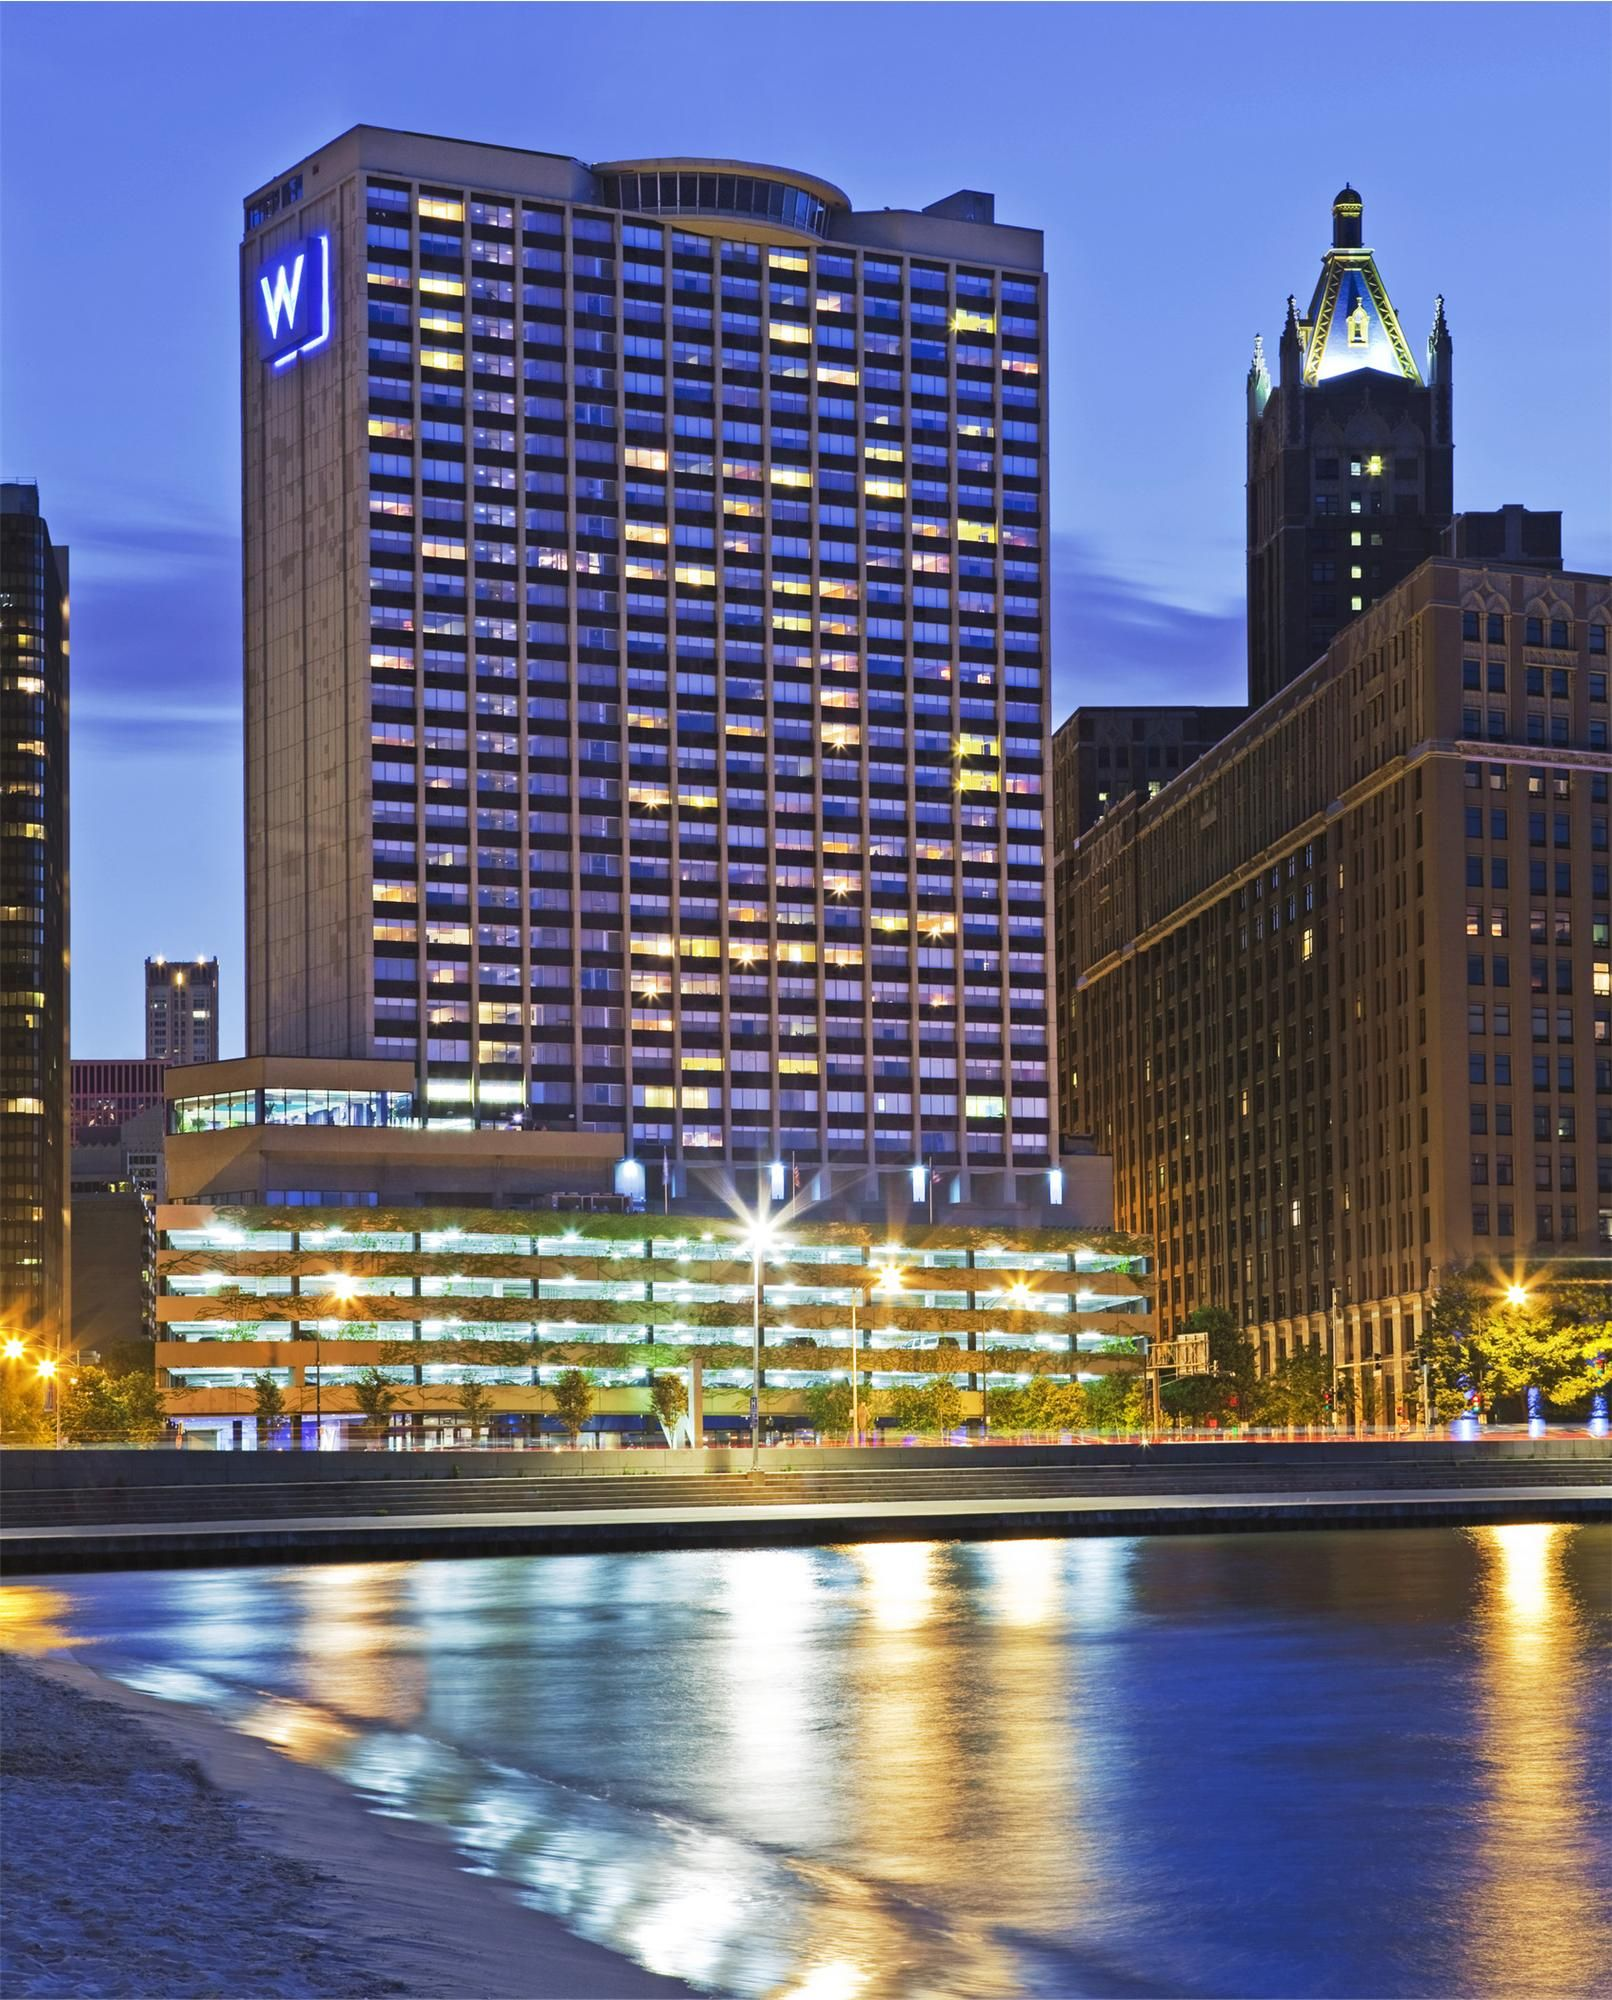 The w chicago lakeshore is a four star luxury hotel overlooking lake michigan